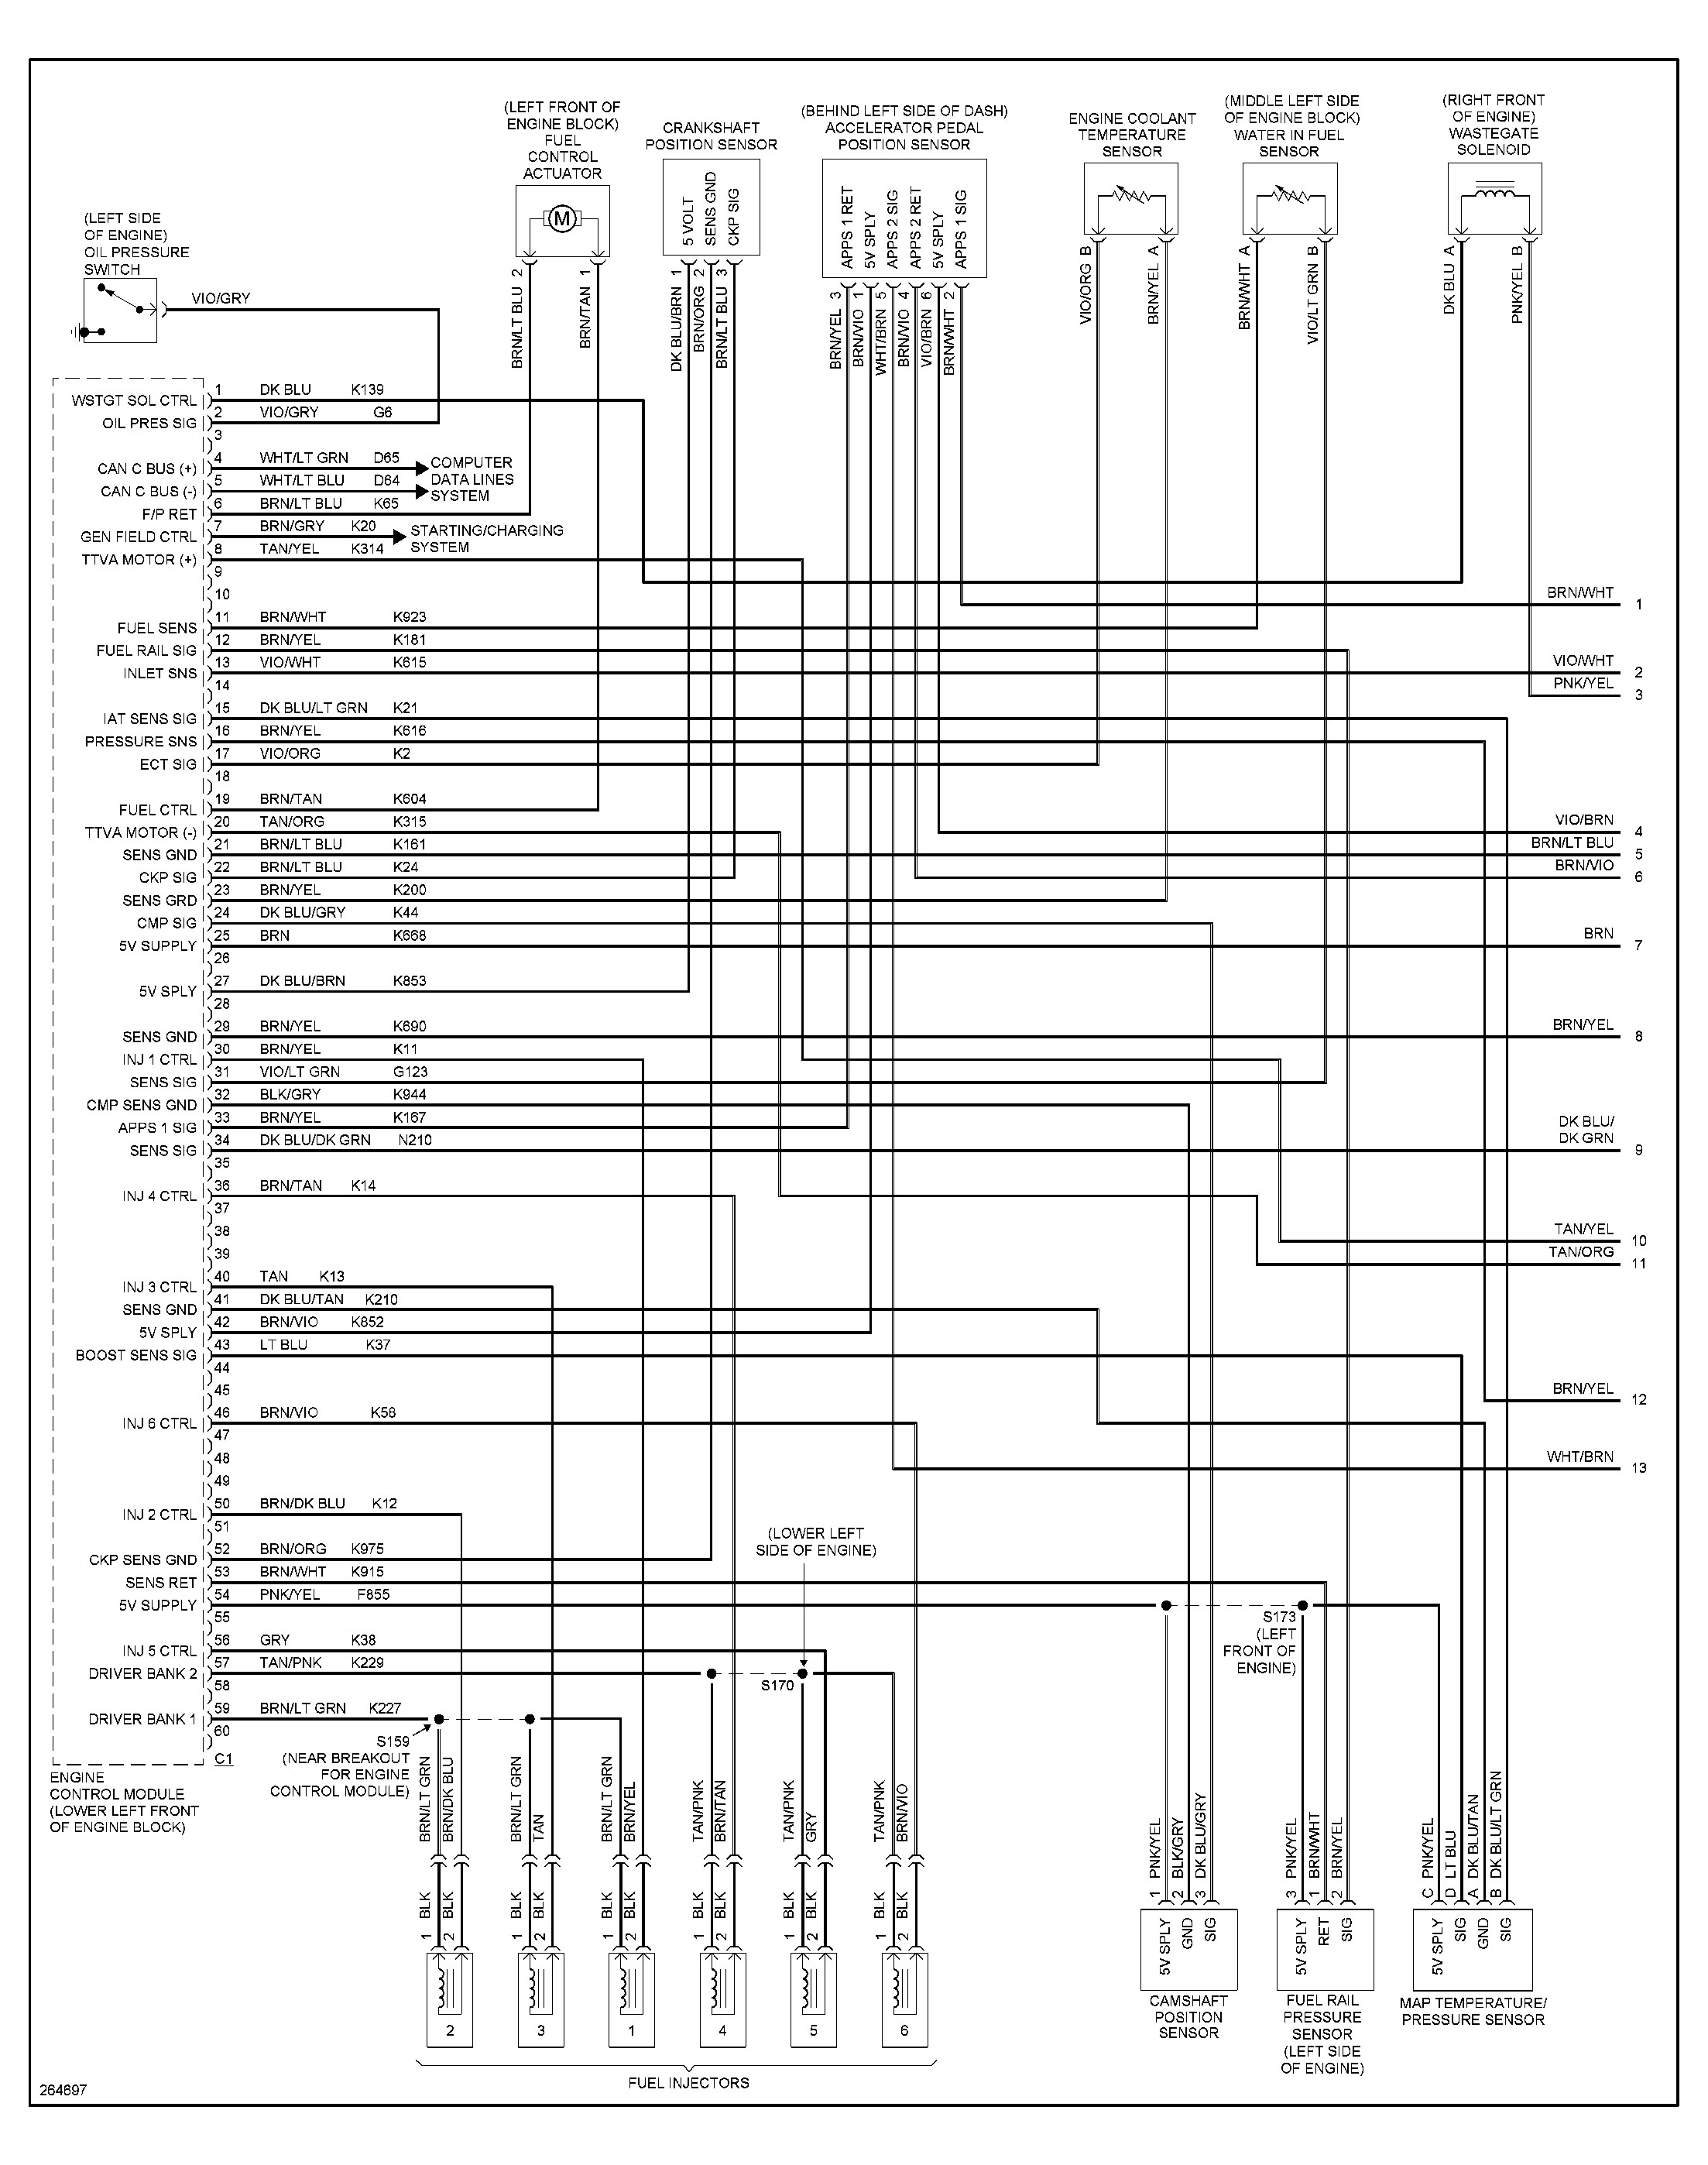 hitch dodge 1500 wiring diagram 2004 dodge 1500 wiring diagram 2004 dodge ram 1500 wiring diagram | free wiring diagram